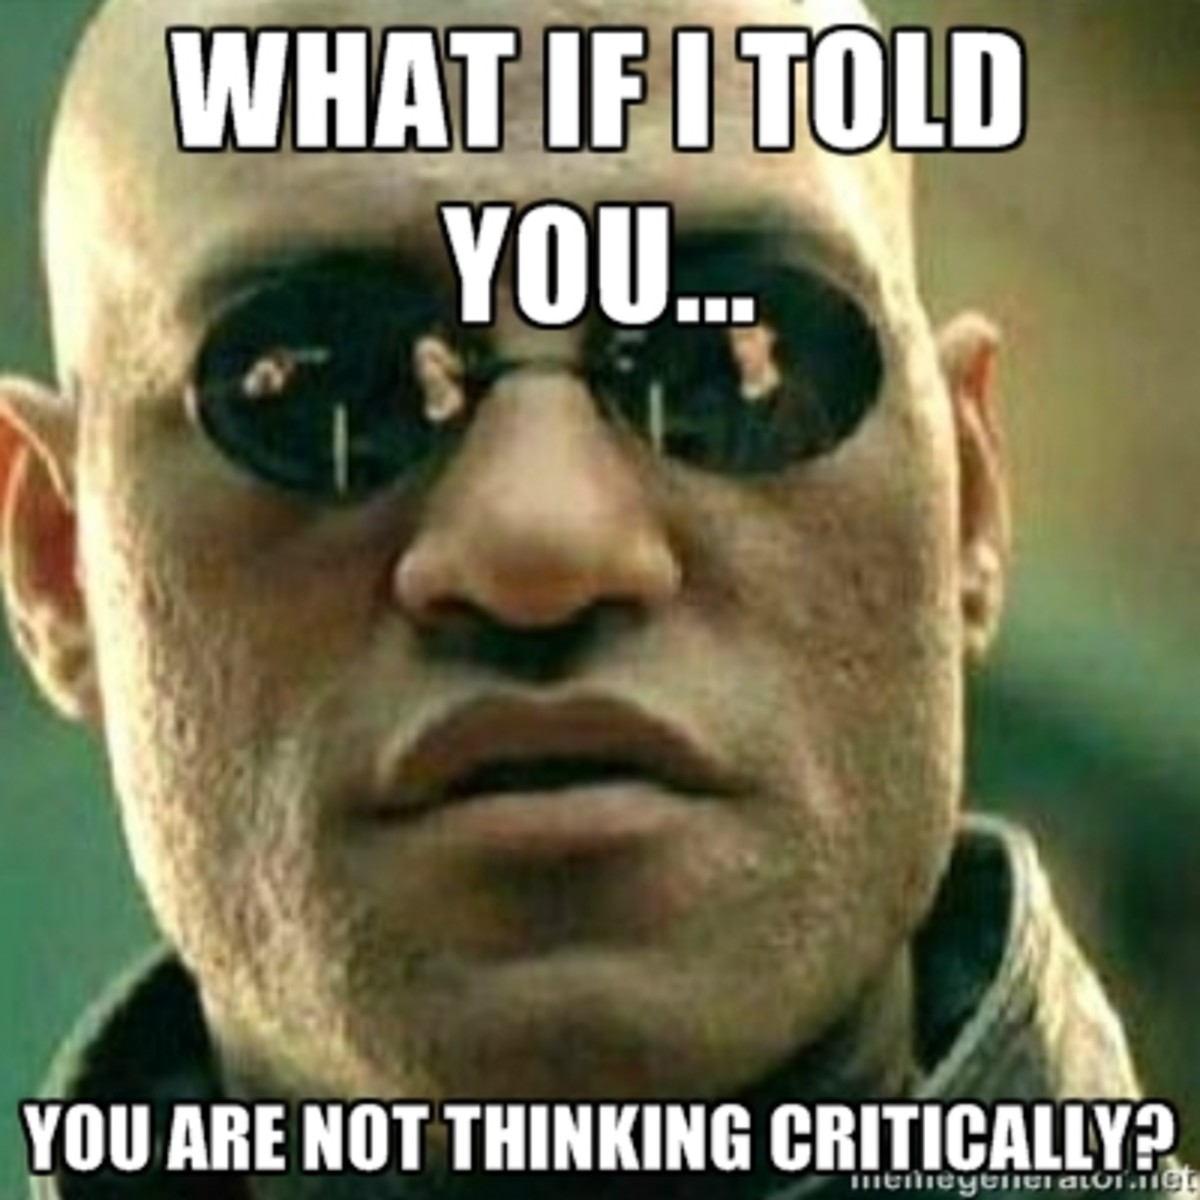 super-short-guide-to-critical-thinking-and-logic